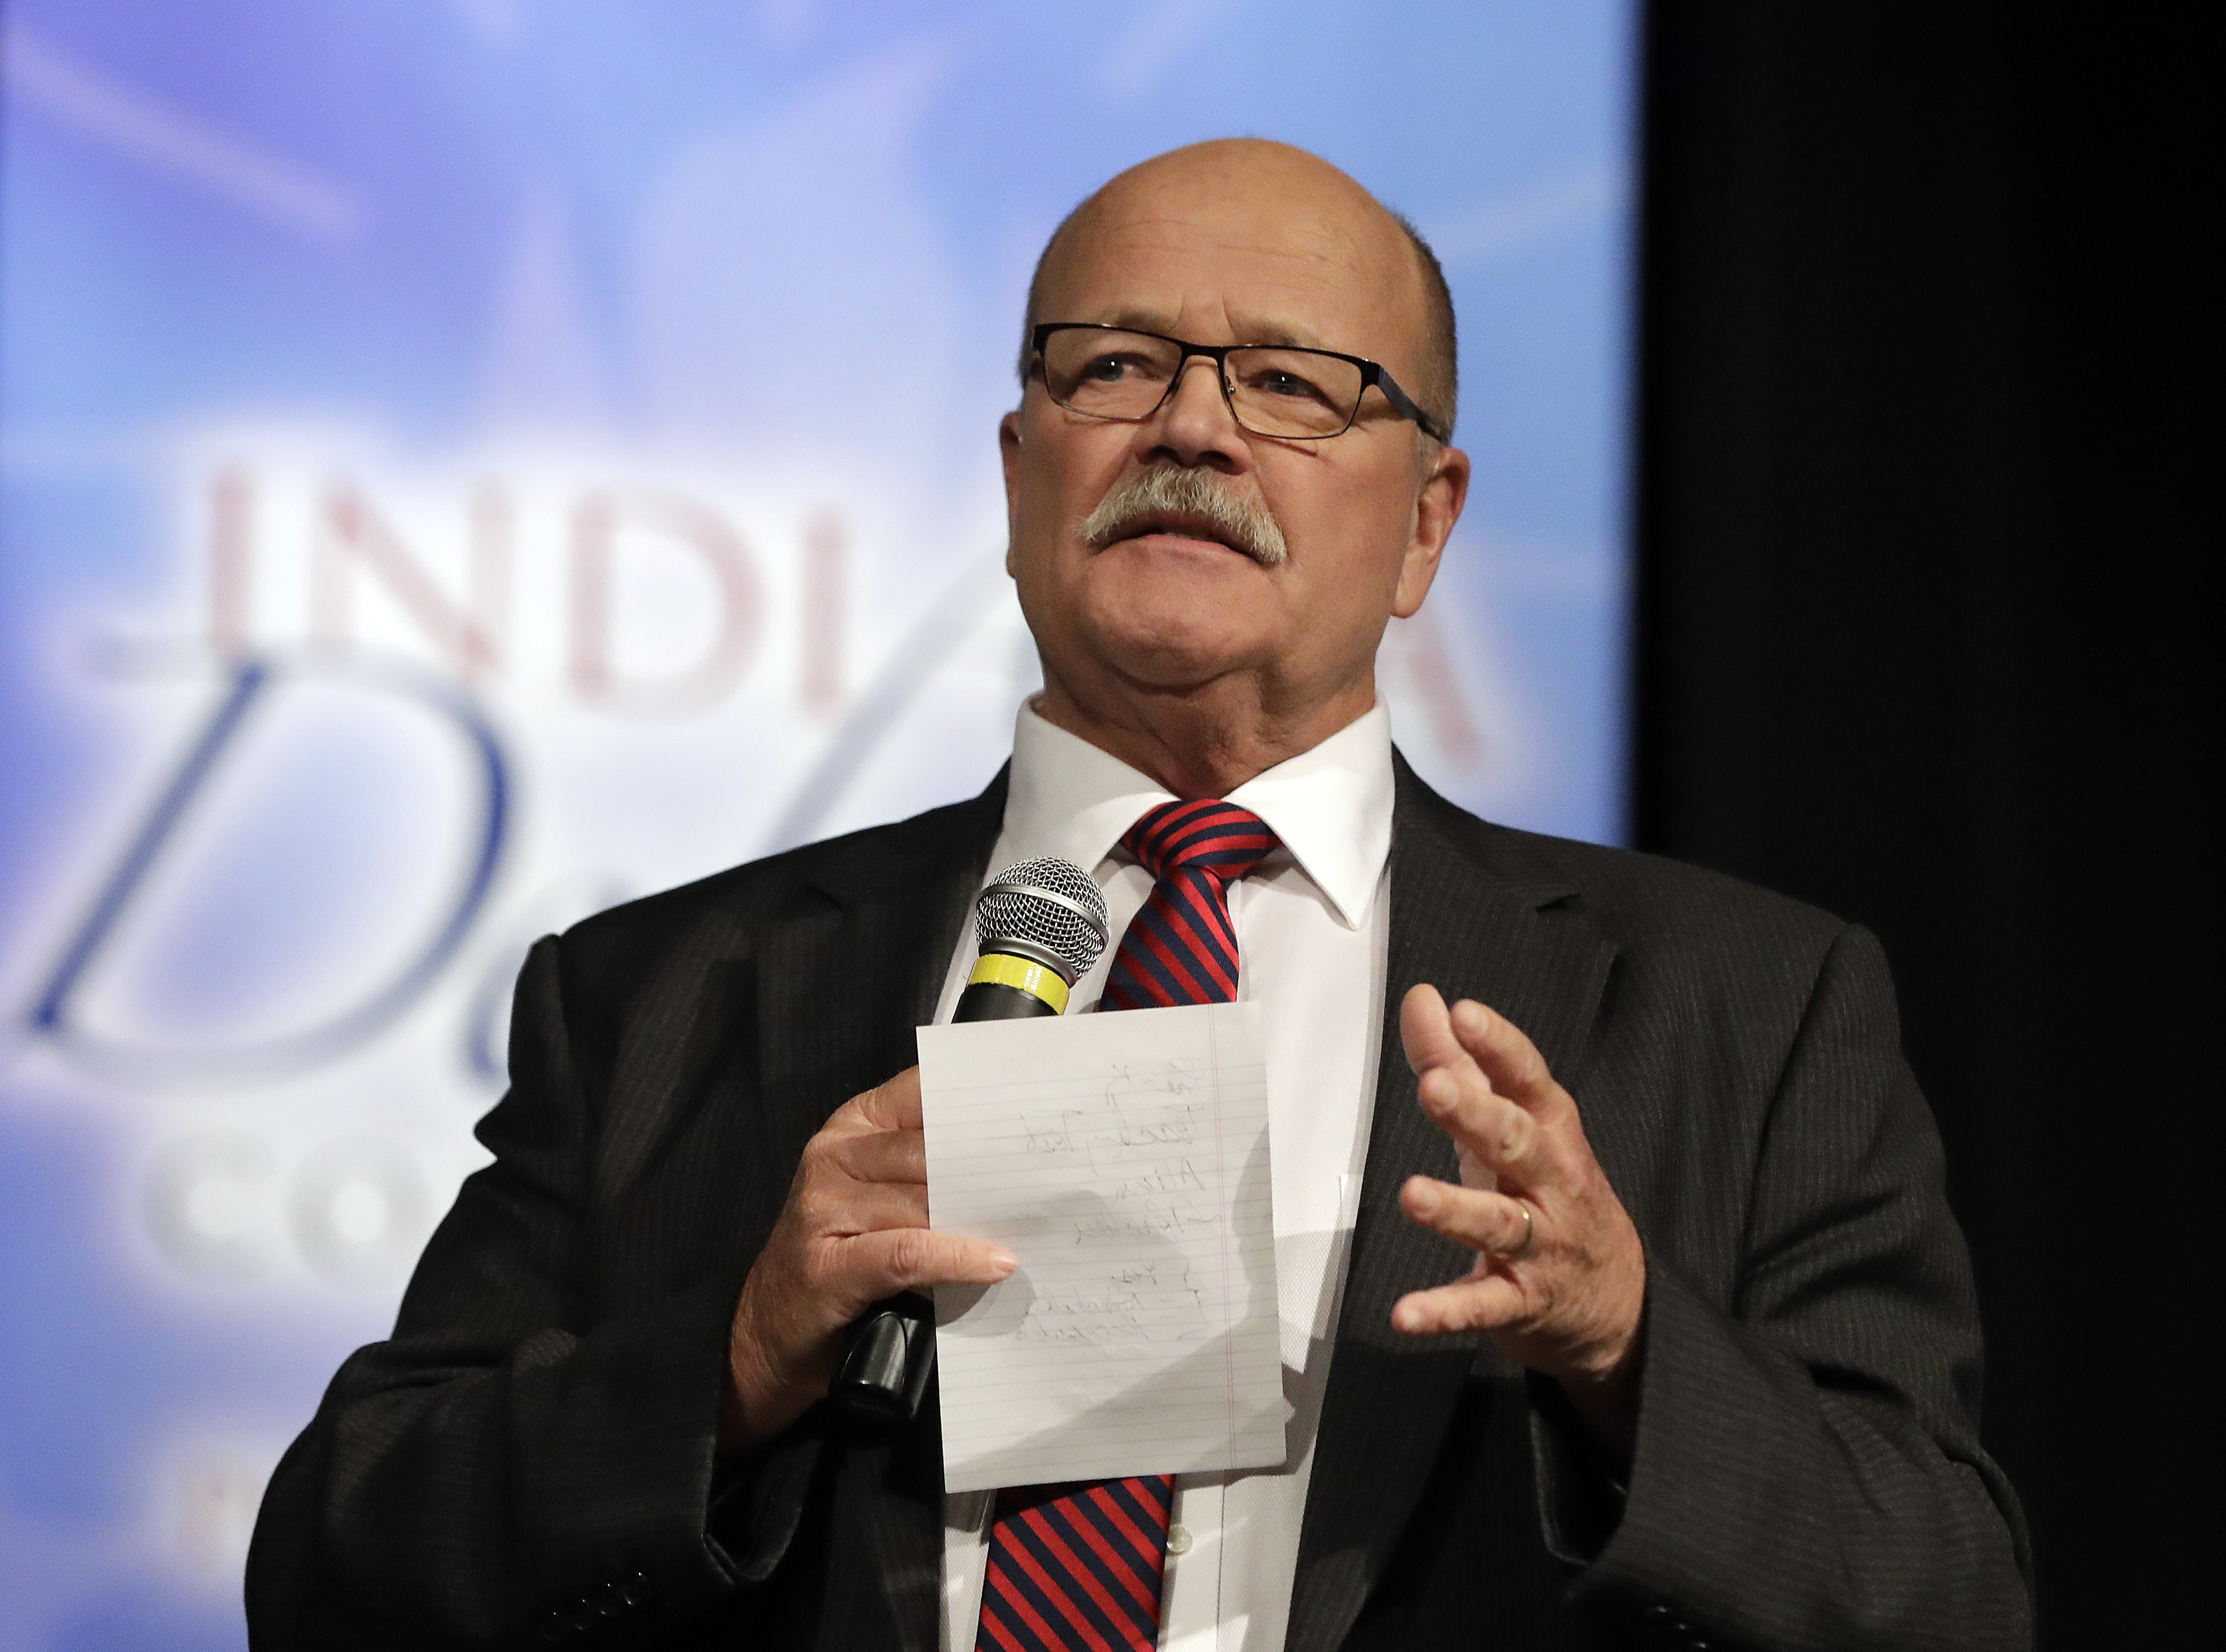 Libertarian Rex Bell, middle, responds to a question during a debate for Indiana Governor, Tuesday, Sept. 27, 2016, in Indianapolis. Democrat John Gregg and Republican Lt. Gov. Eric Holcomb also participated in the debate.